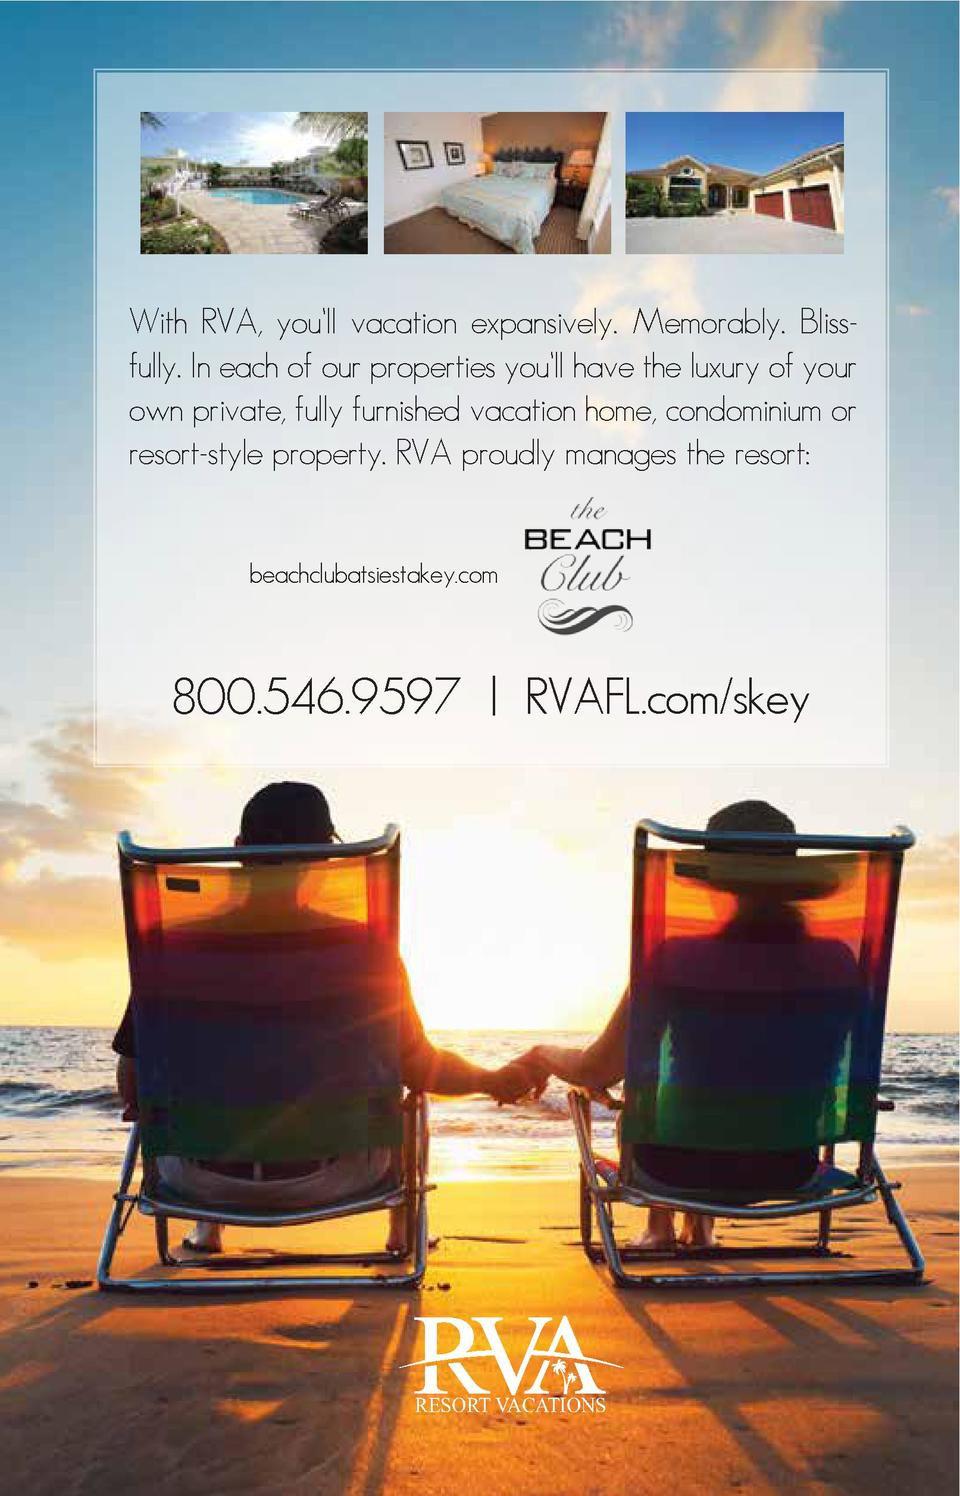 With RVA, you ll vacation expansively. Memorably. Blissfully. In each of our properties you ll have the luxury of your own...